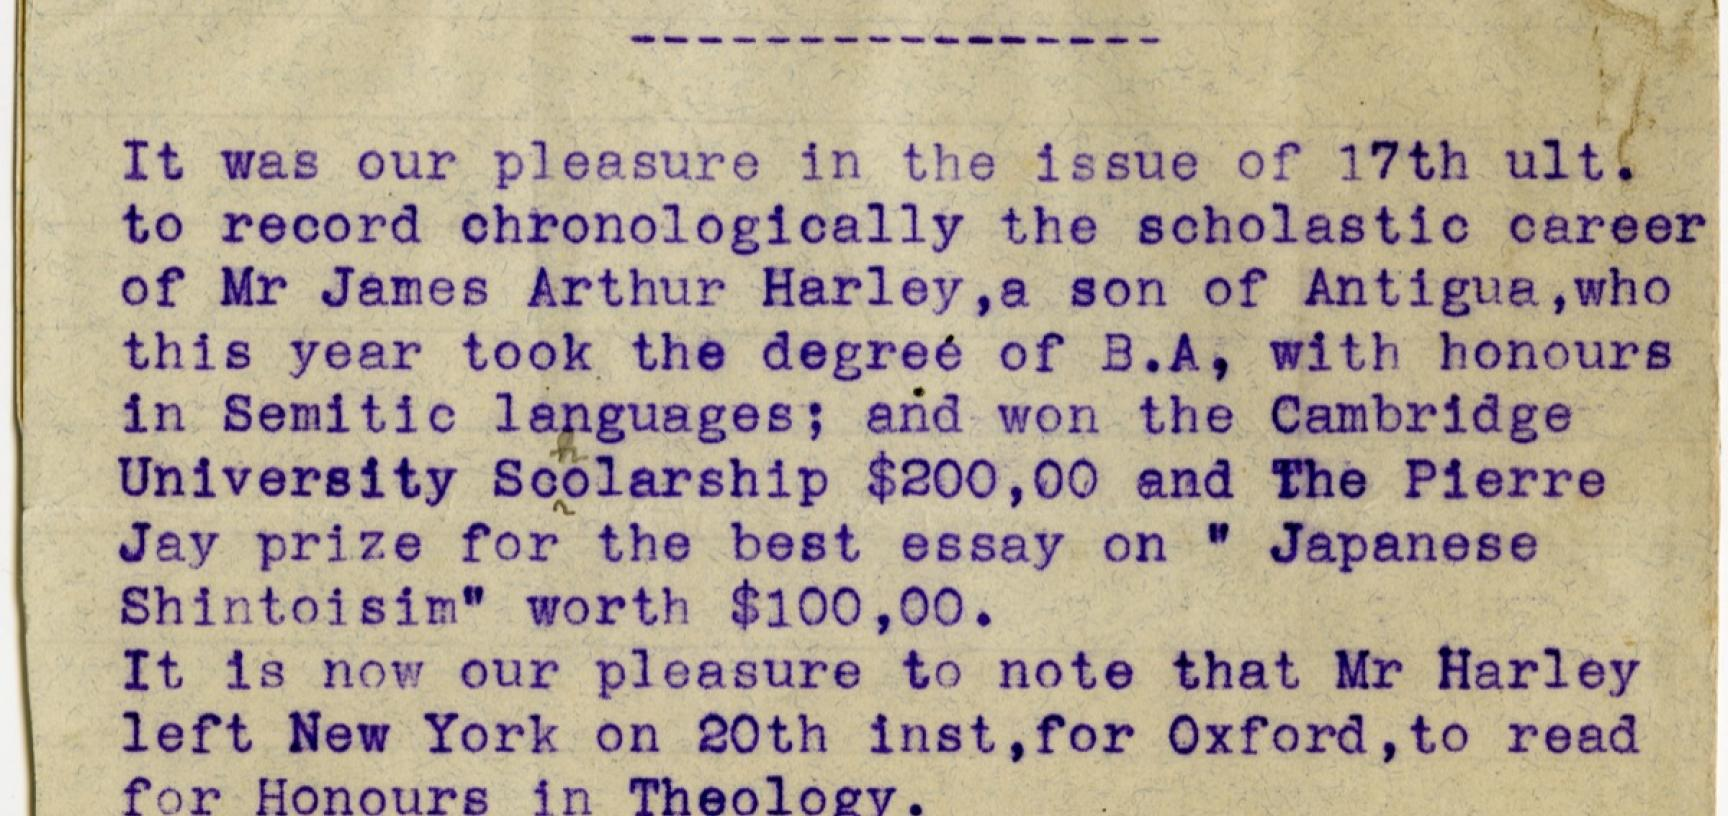 Typed announcement from The Antigua Standard, dated 28 September 1907, reporting Harley's graduation from Harvard University with a BA with Honours in Semitic Languages, and his departure for Oxford, to read for Honours in Theology. 'His is a proud record